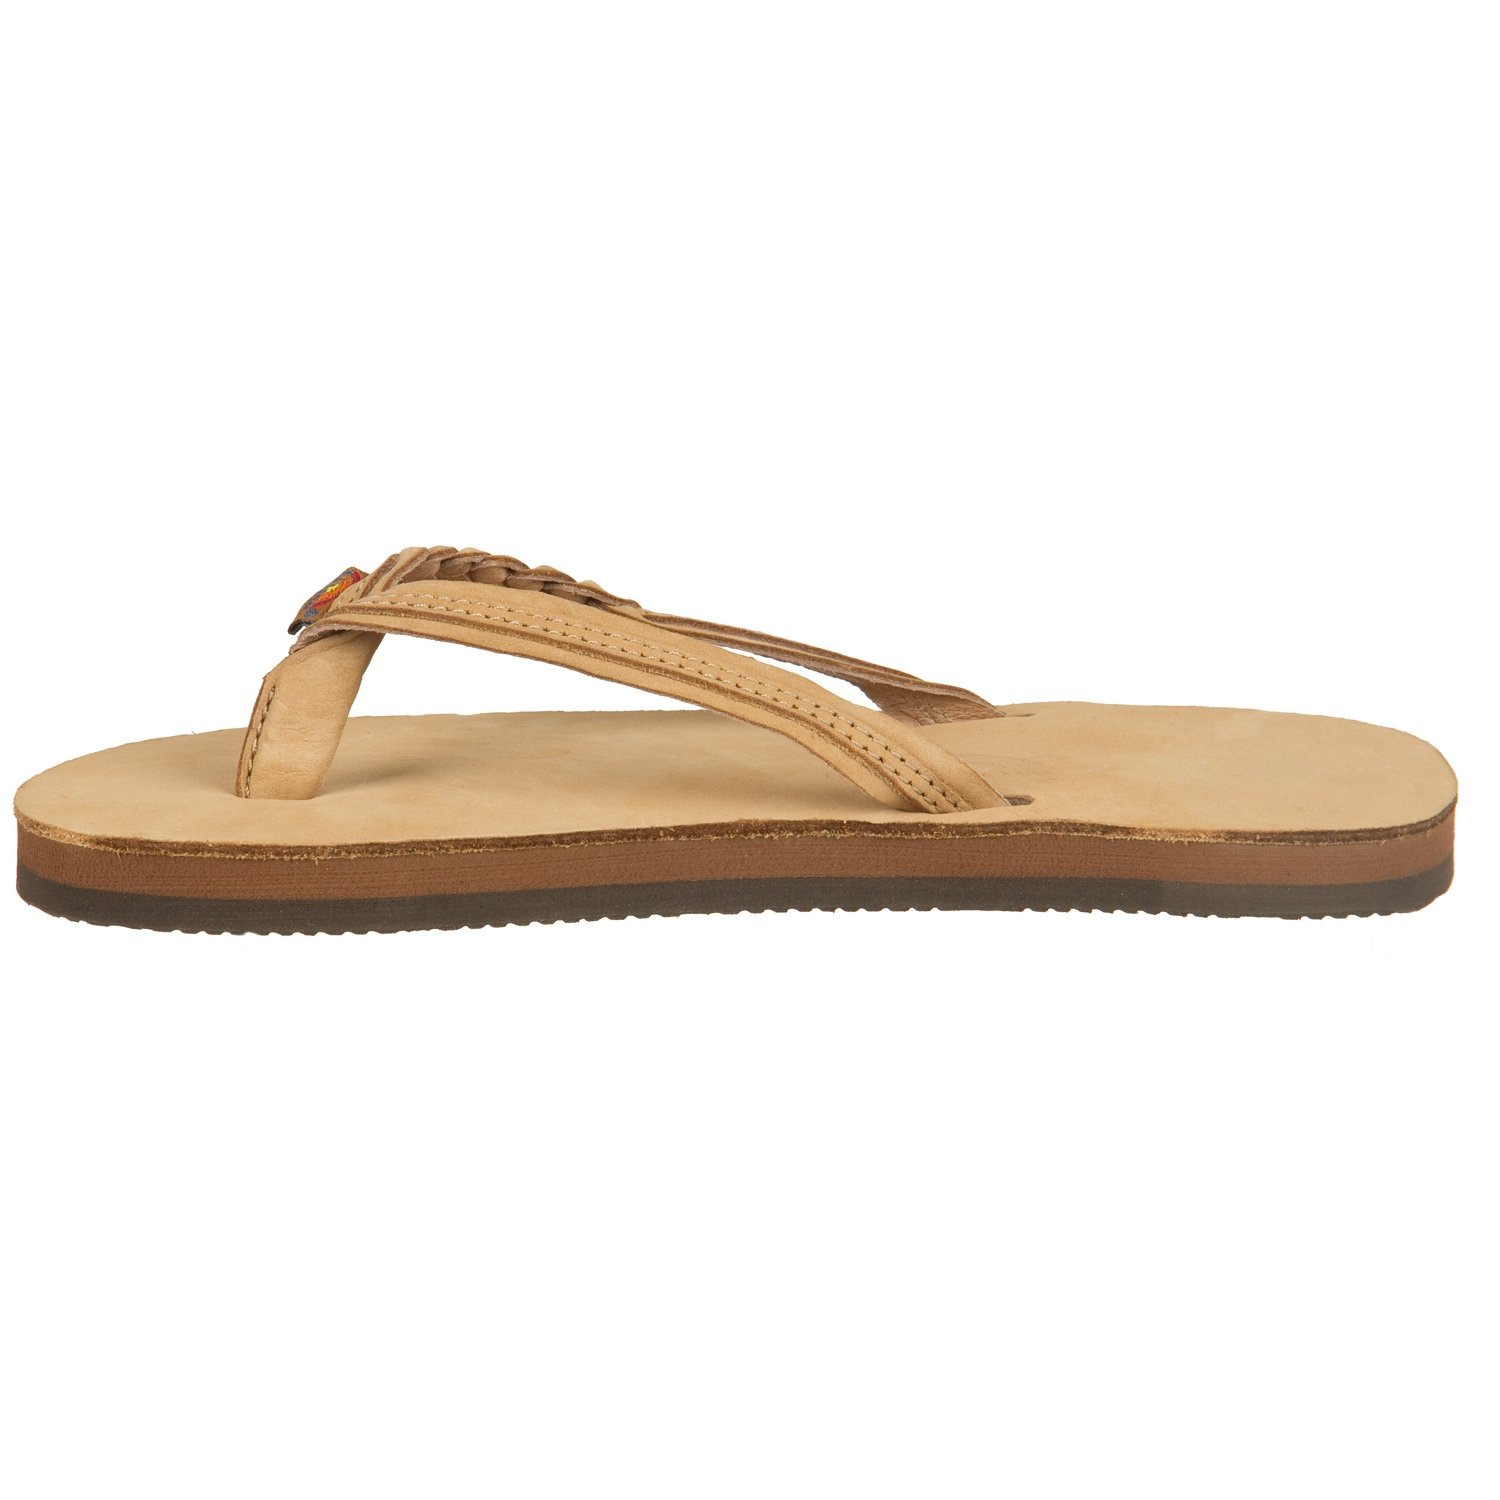 Rainbow Sandals Kids Single Layer Premier Leather Flirty Braidy 101LTSFB EXPR